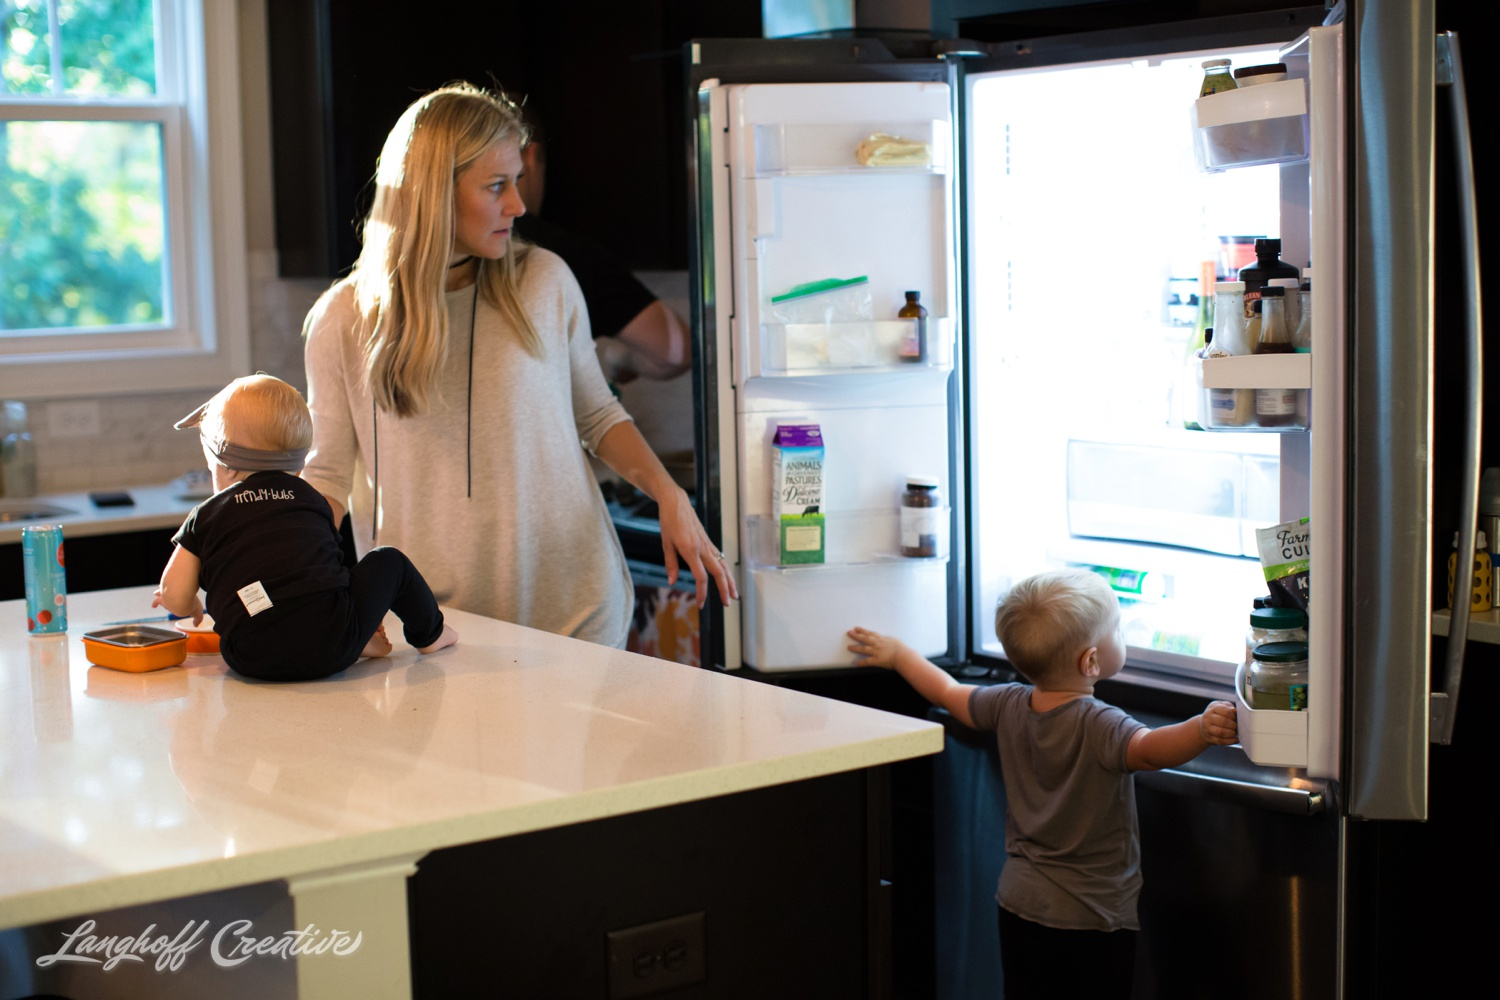 2018-RealLifeSession-Livingood-DayInTheLife-DocumentaryFamilyPhotography-Raleigh-Durham-Cary-RDU-FamilyPhotographer-20-LanghoffCreative-AmberLanghoff-photo.jpg